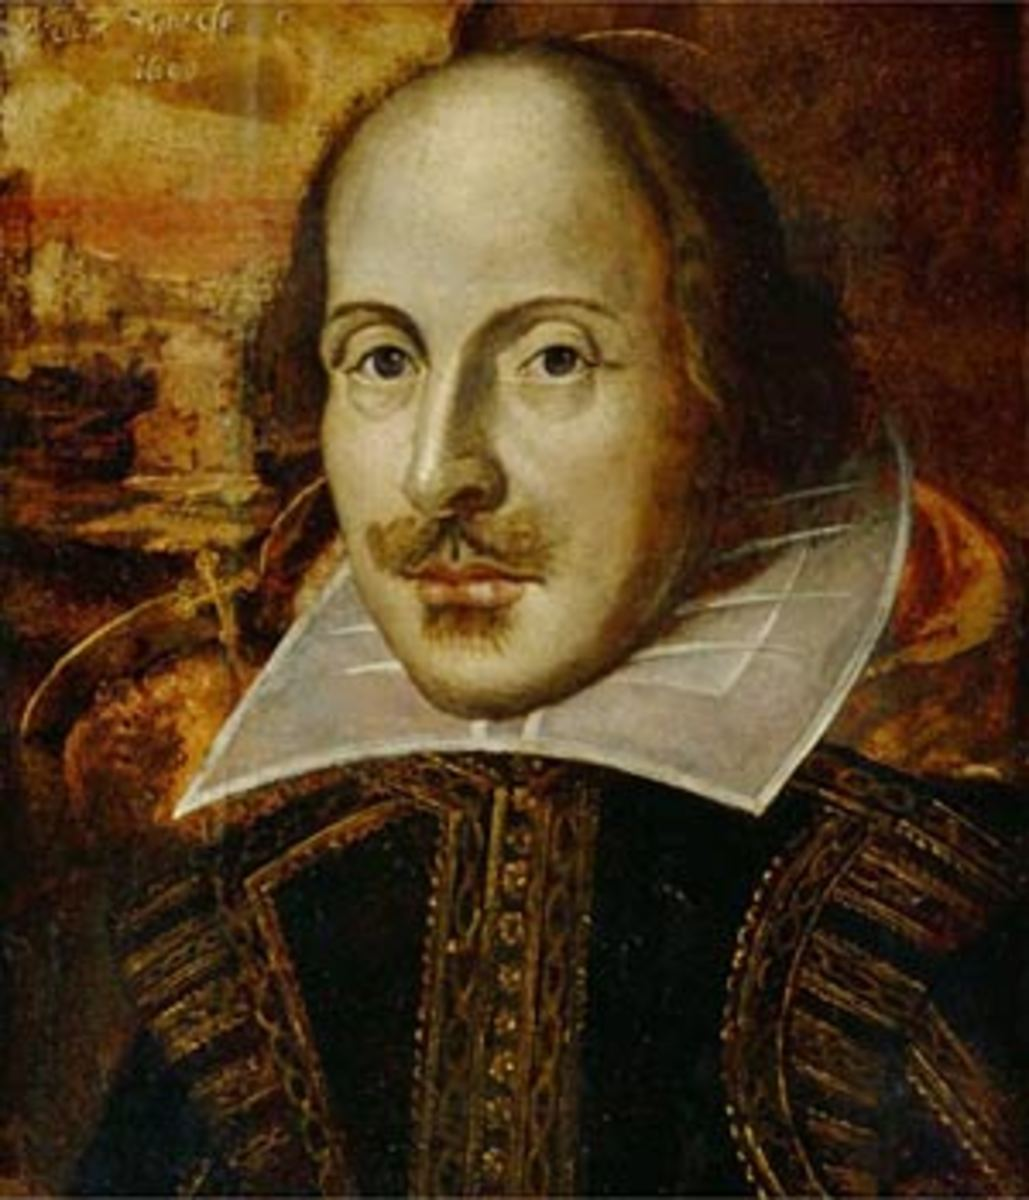 the-royal-plural-in-shakespeares-richard-ii